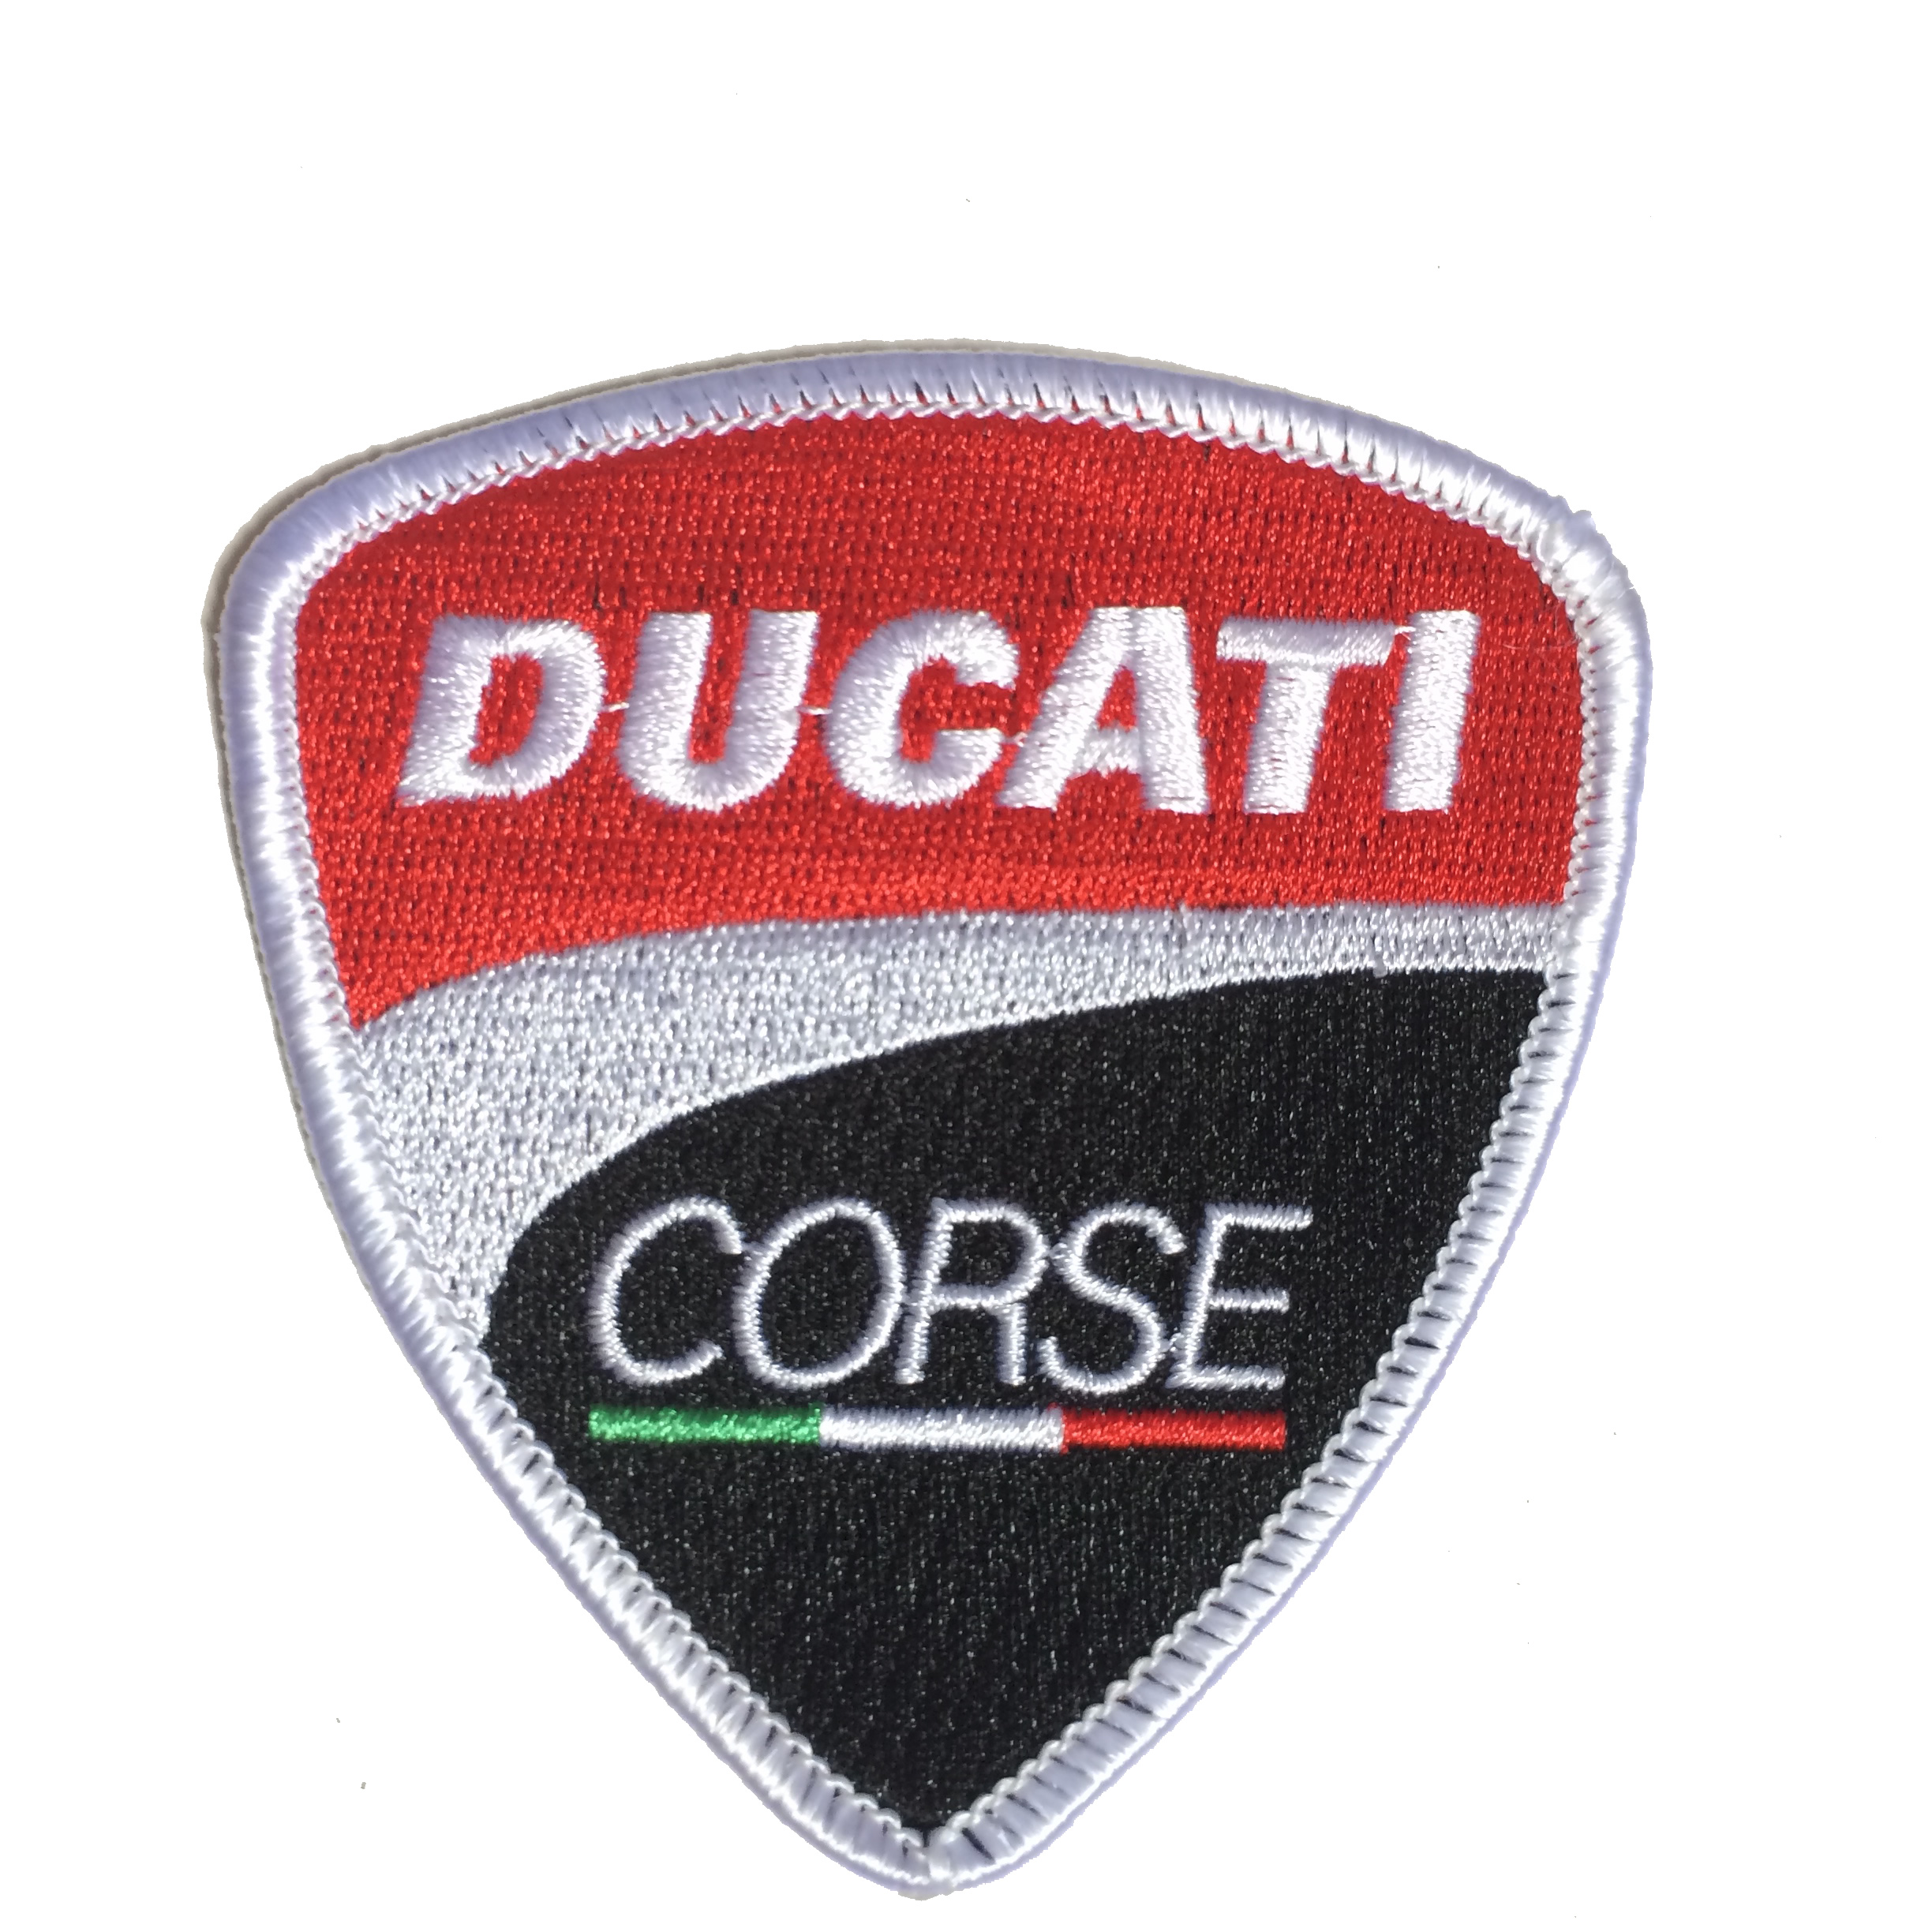 Ducati Corse Racing Embroidery Patches For Garment Badge Merrow Border Iron-on Backing As Customized Design Free Shipping